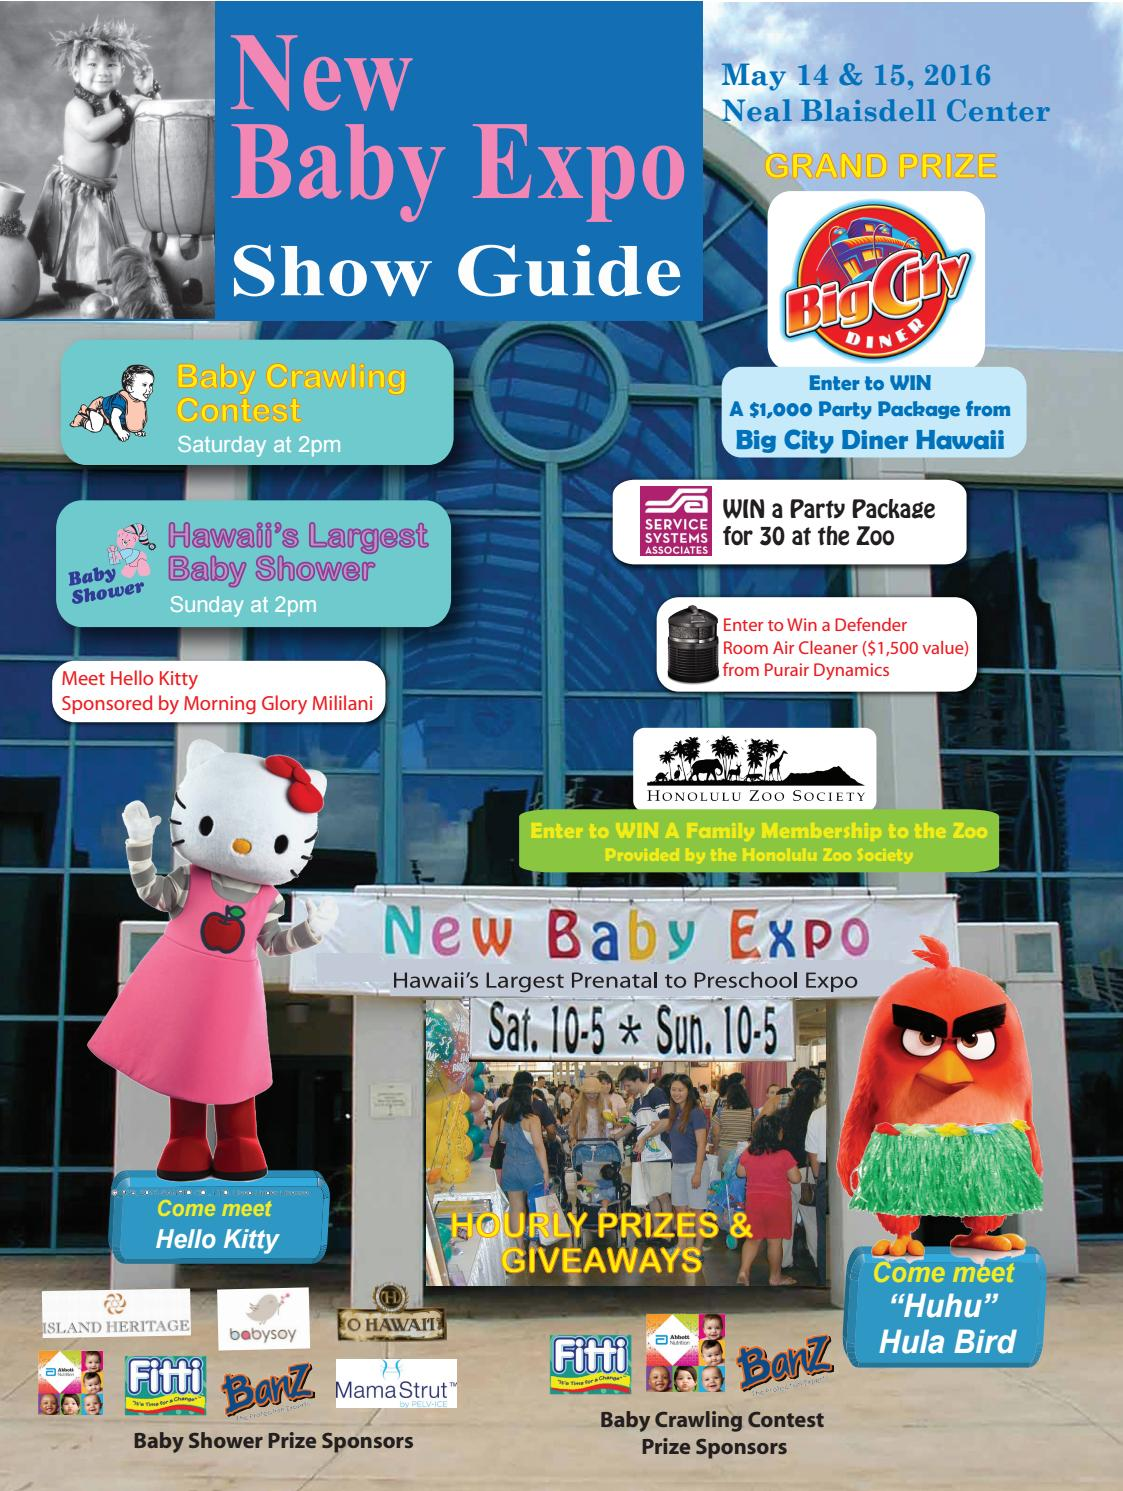 New Baby Expo 2016 Show Guide by David Parish issuu